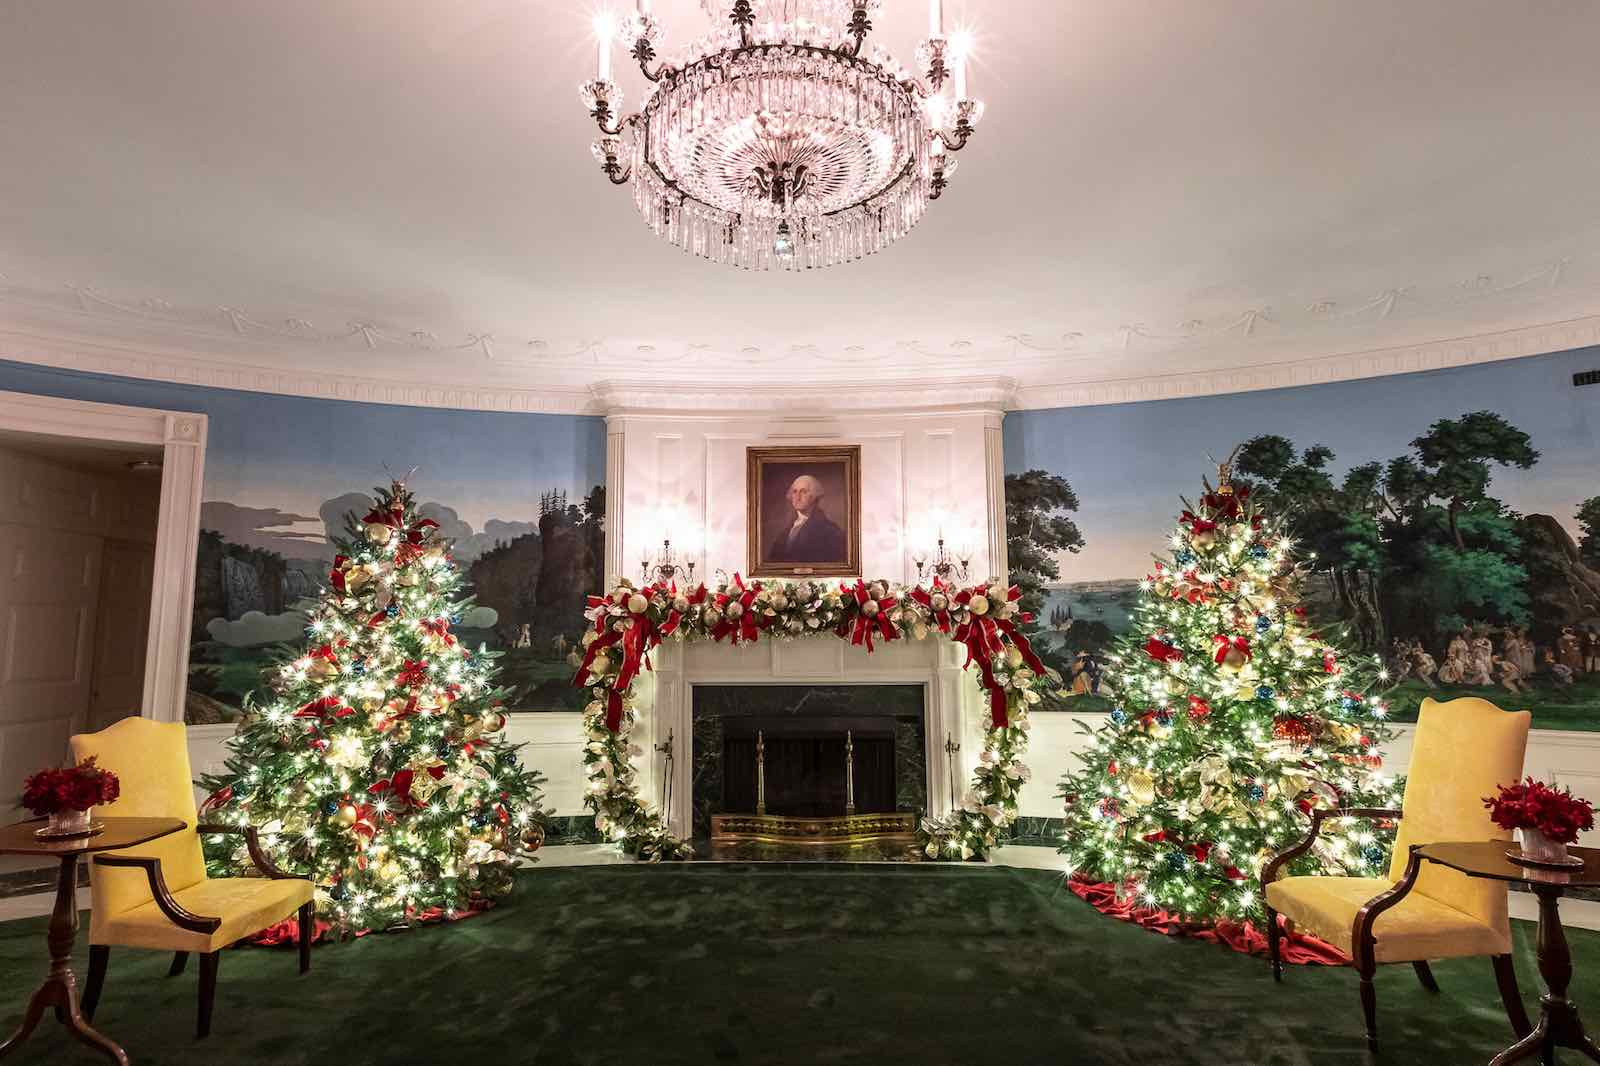 A portrait of George Washington hangs in the Diplomatic Reception Room of the White House, decorated for the 2019 Christmas season (Photo: The White House/Flickr)